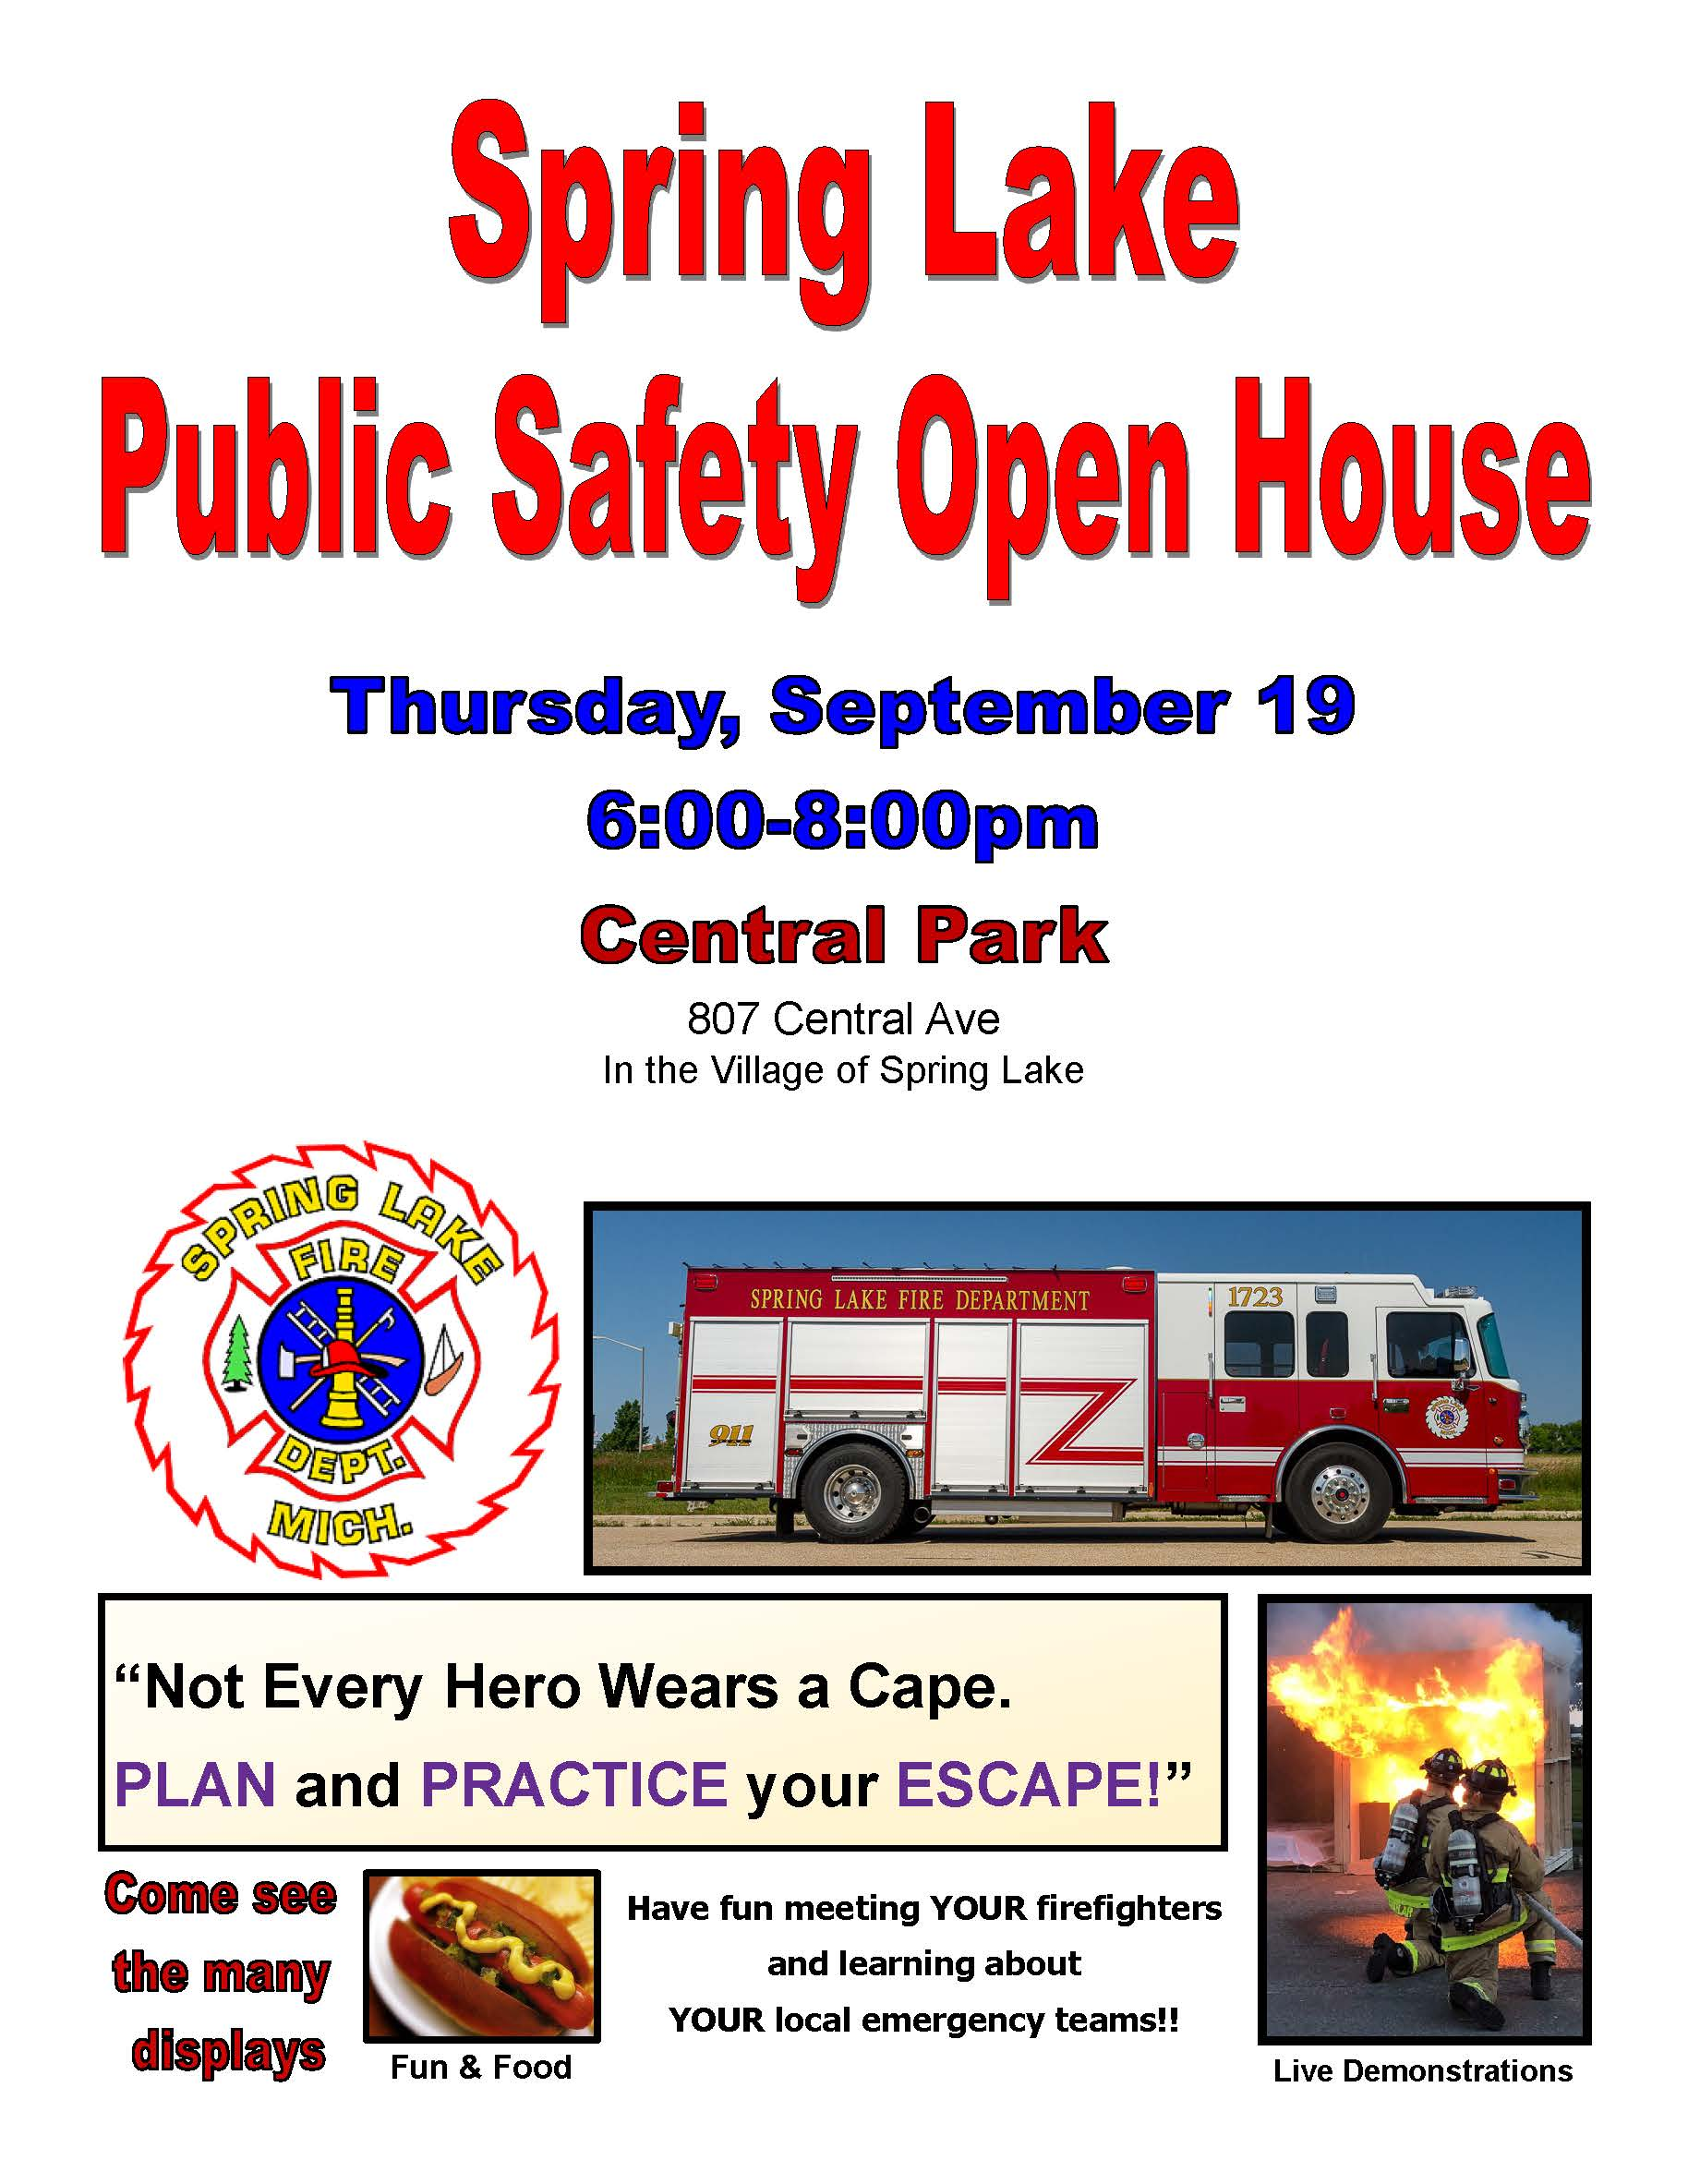 Fire Prevention open house 9/19/19